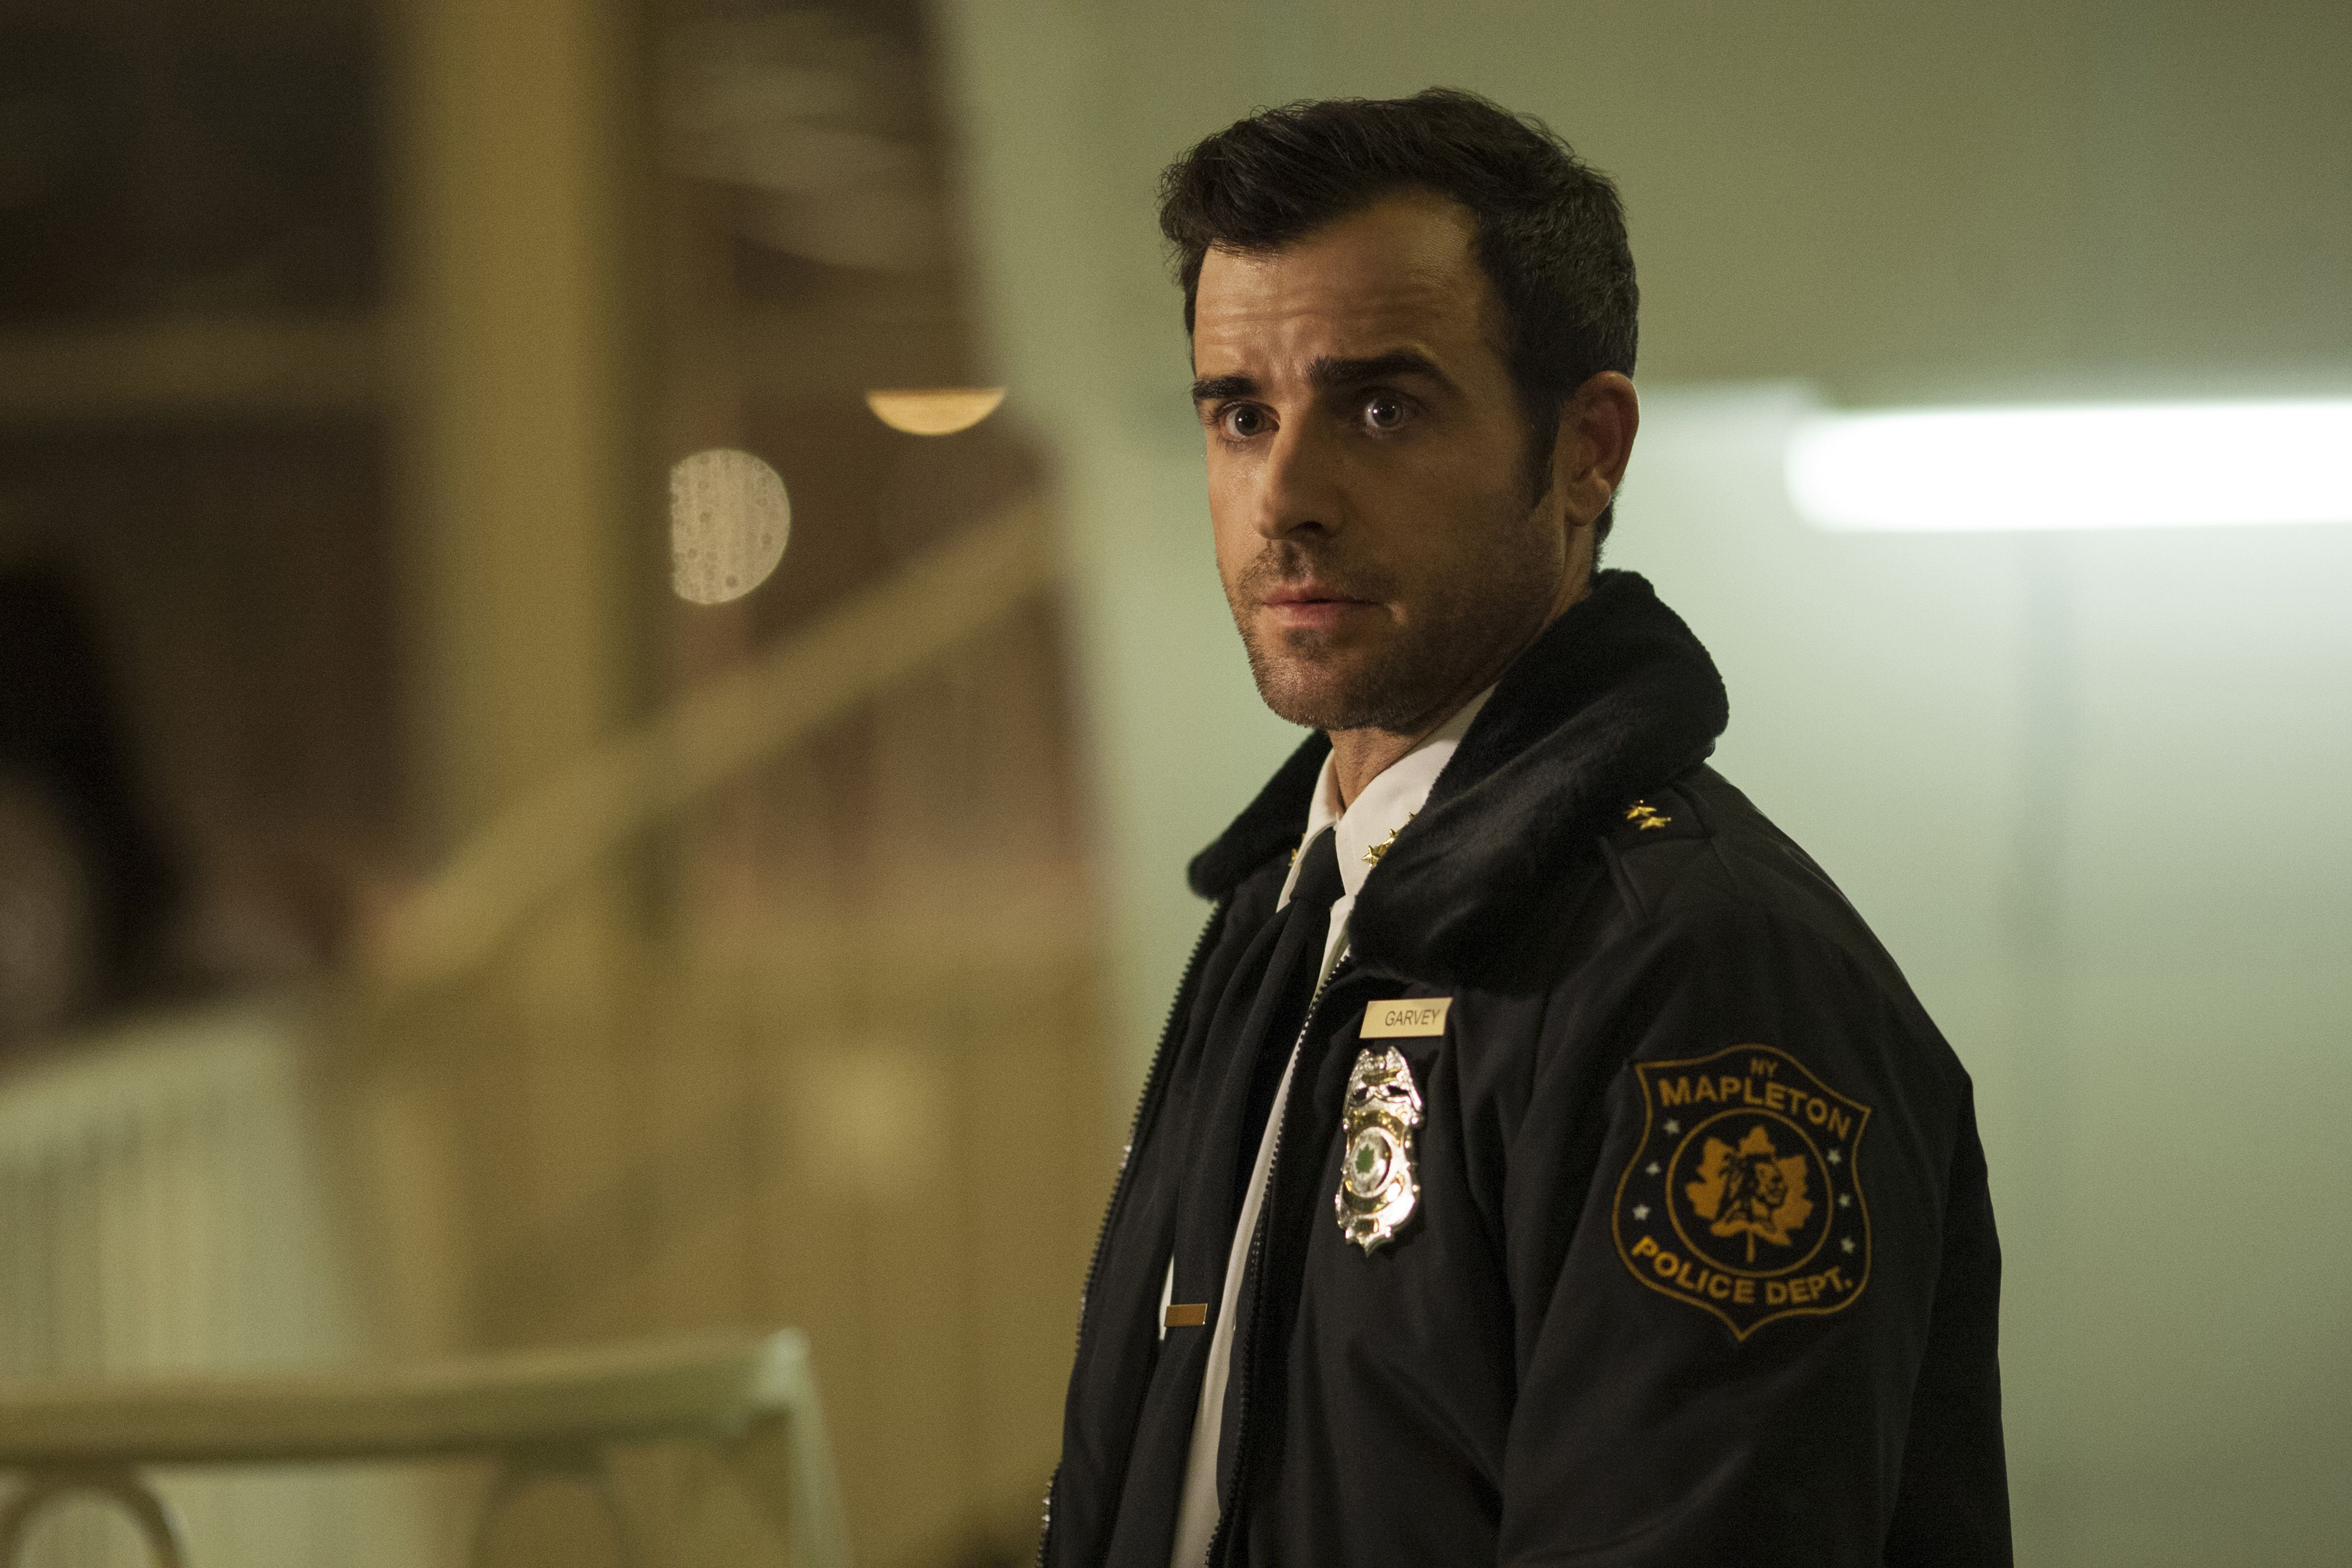 The Leftovers Recap Season 1 Episode 4 Quot The B J And The A C The Leftovers Tv Show Justin Theroux The Leftovers Hbo